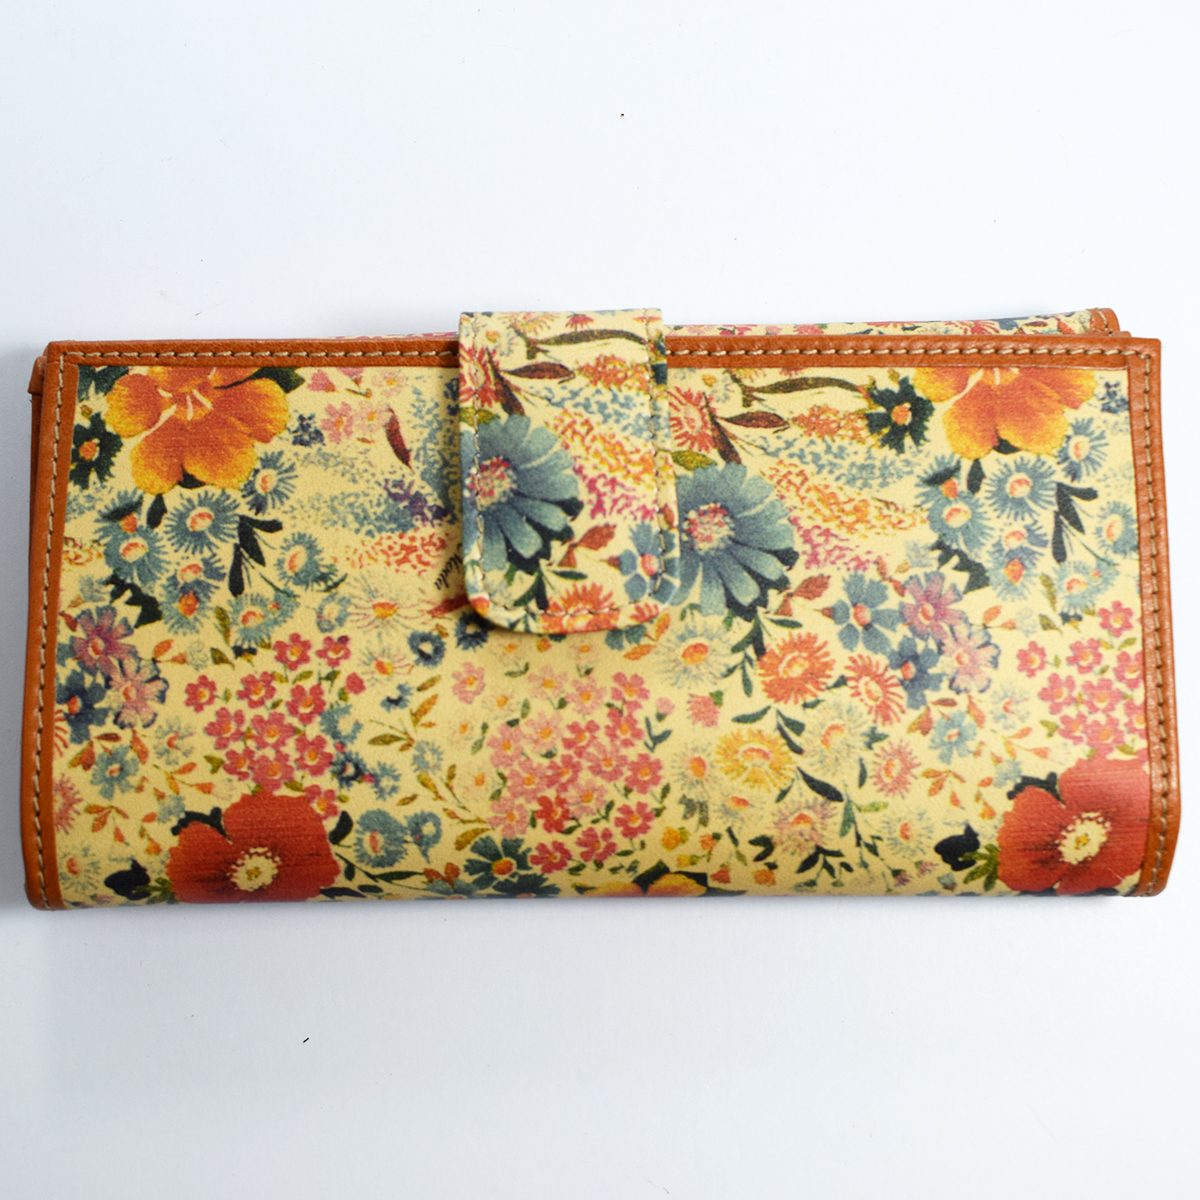 1632 Women's wallet with flap by Bottega Fiorentina